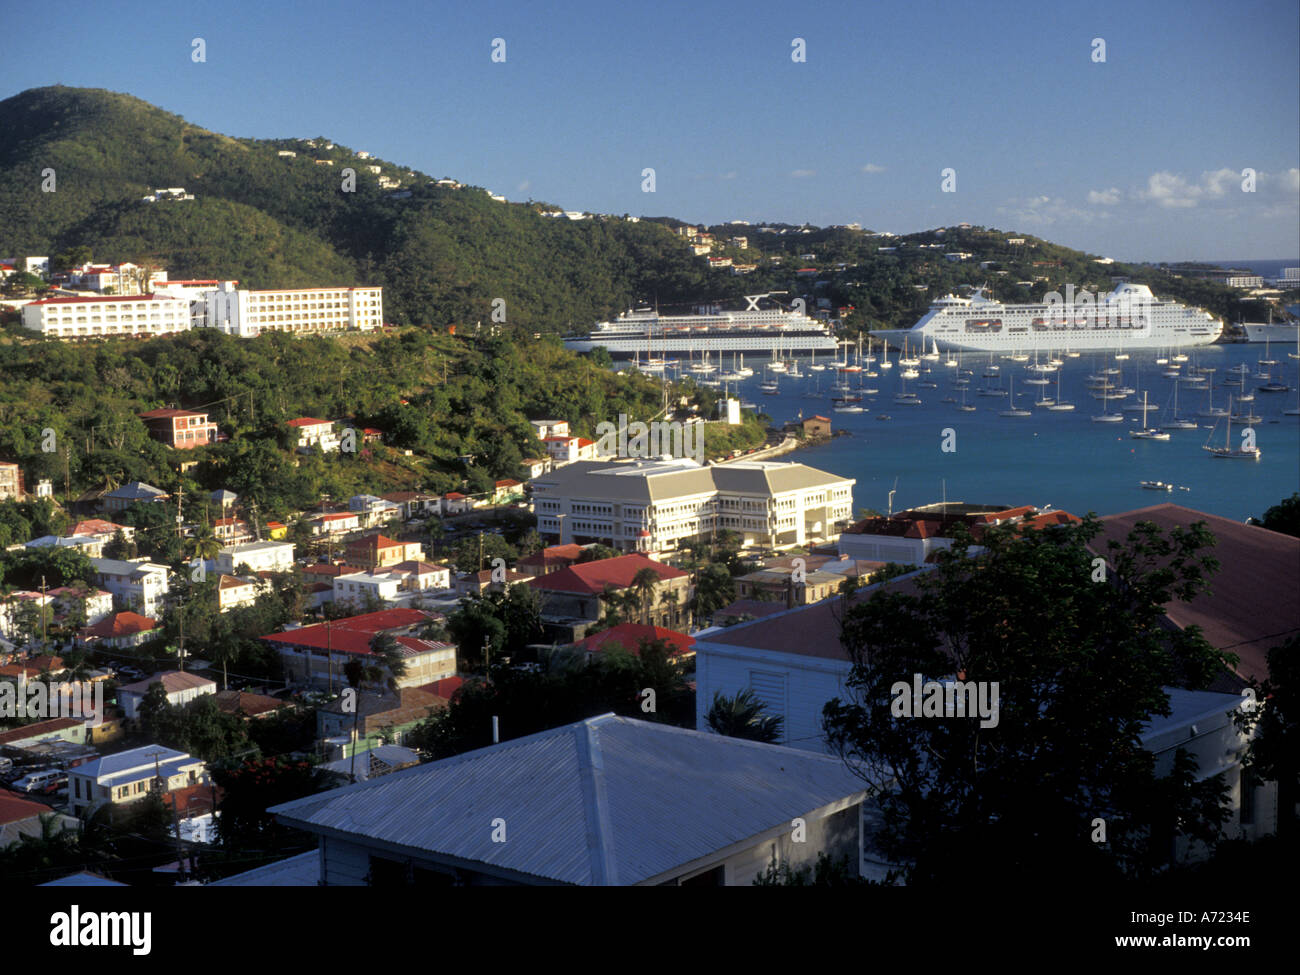 AJ2351, Karibik, US Virgin Islands, St. Thomas, V.I. Stockbild